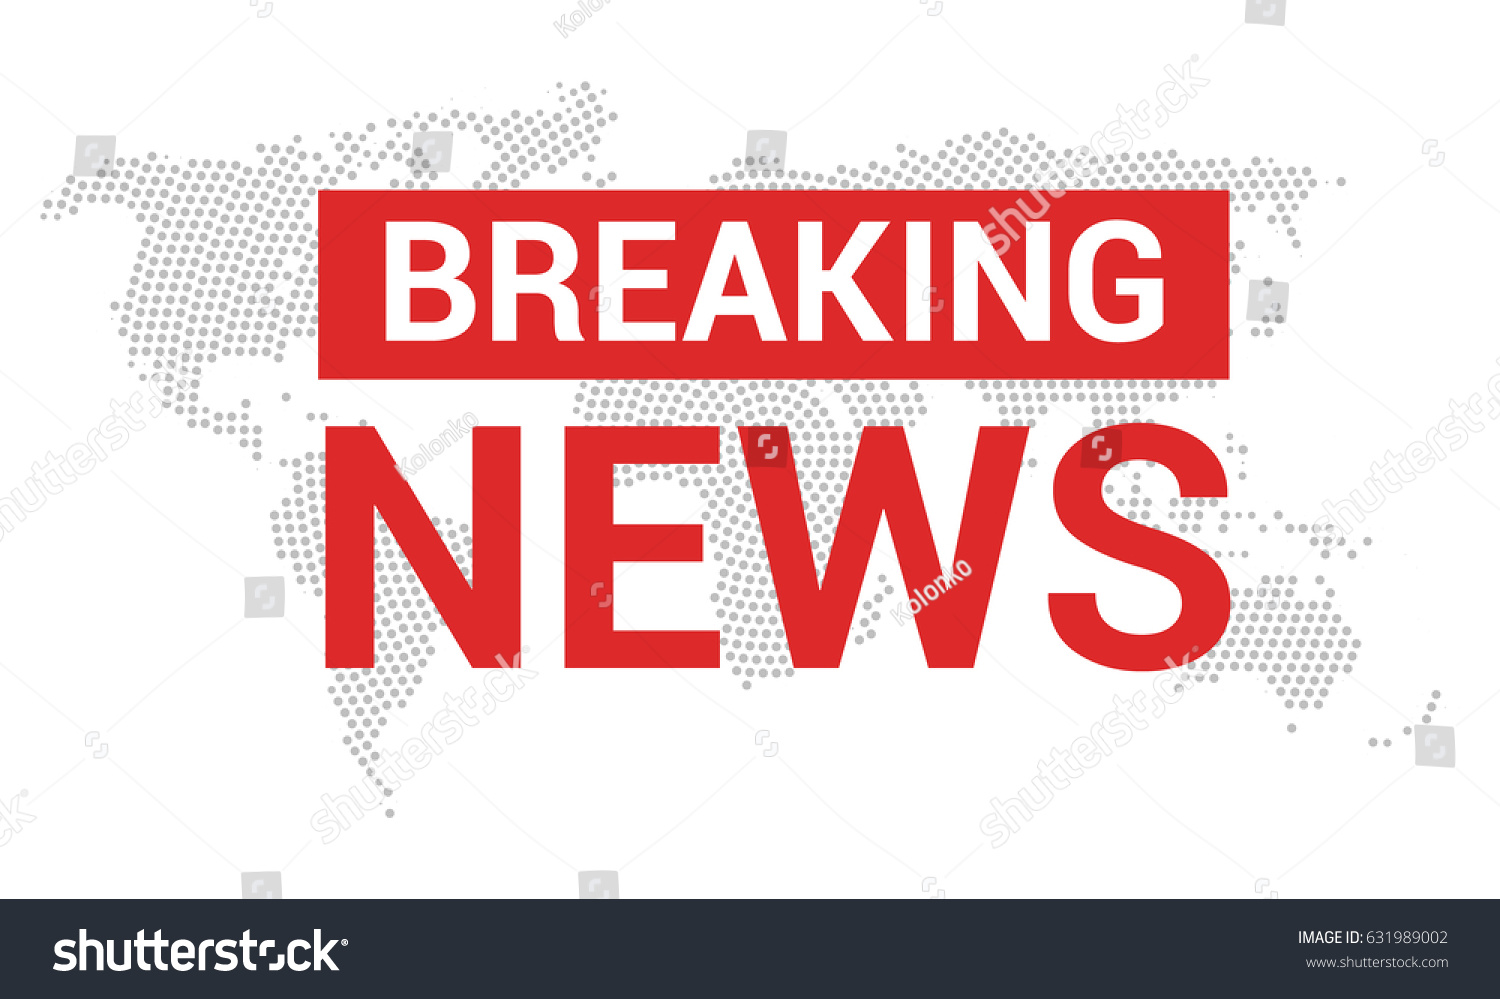 image displaying the words breaking news